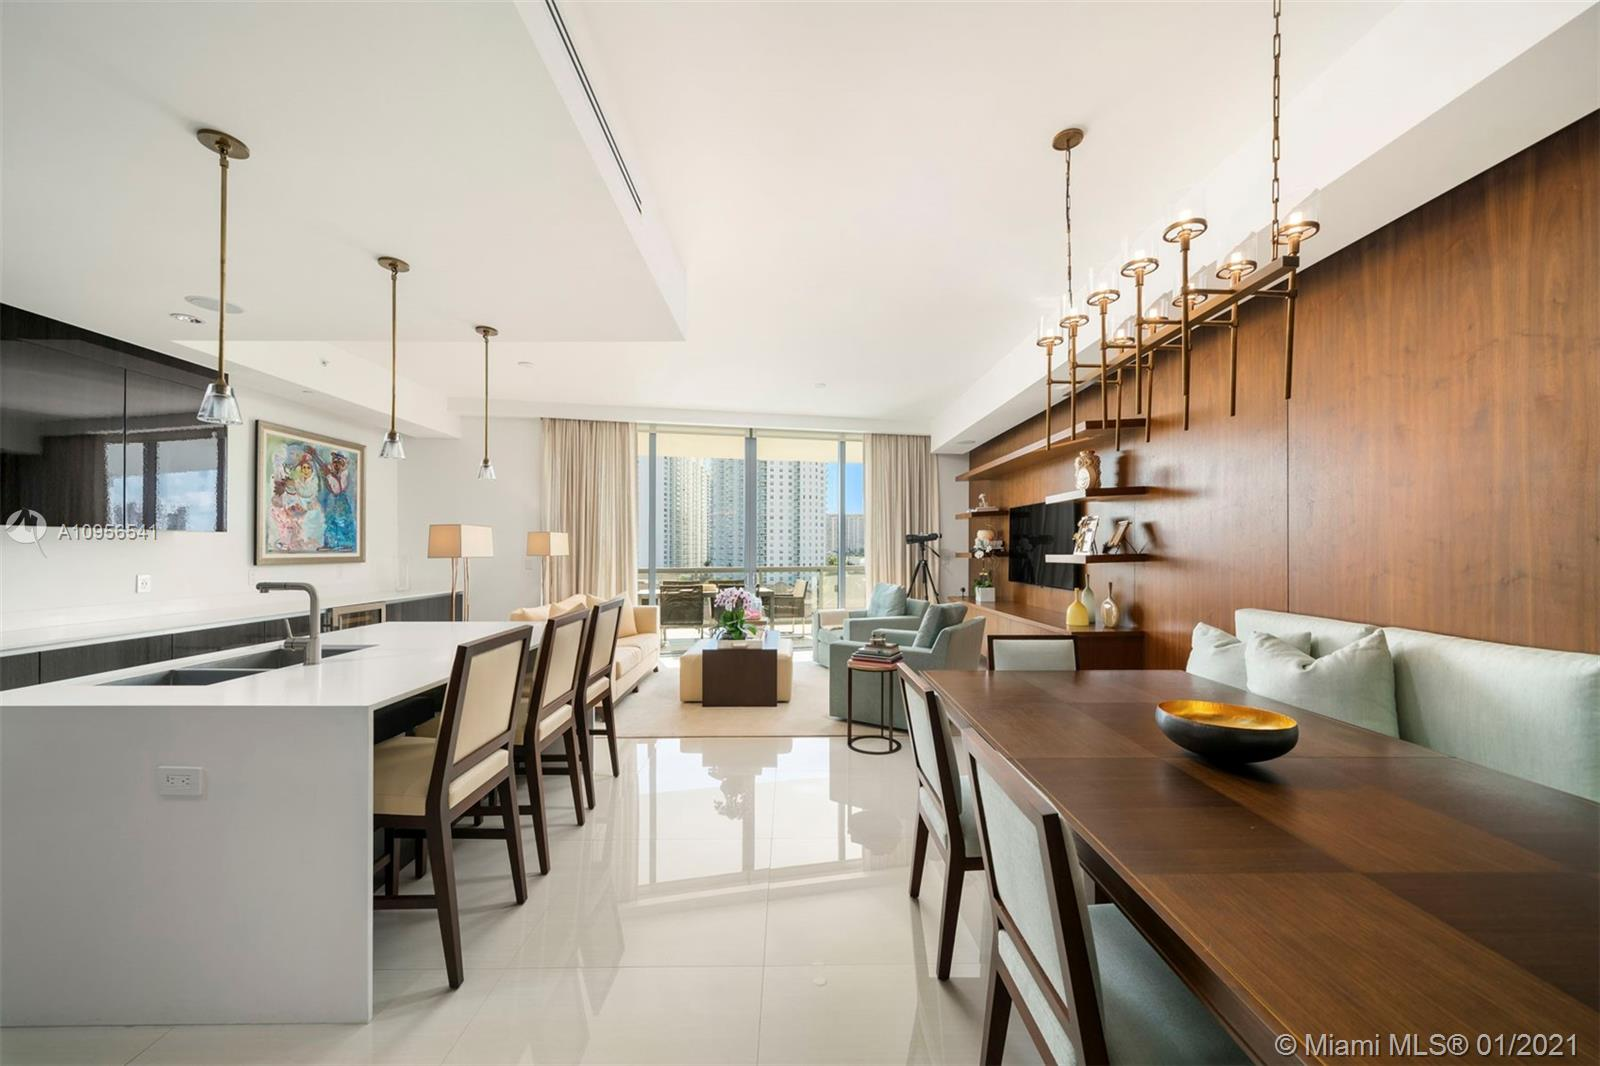 Gorgeous unit at prestige Echo Aventura with unobstructed views of the city, ocean and intracoastal. This 3 bedrooms 4.5 bathrooms has a private entry and elevator. The building has 5 star amenities, infinity pool, gym, restaurants and more. The unit is available for showings starting December 2020.